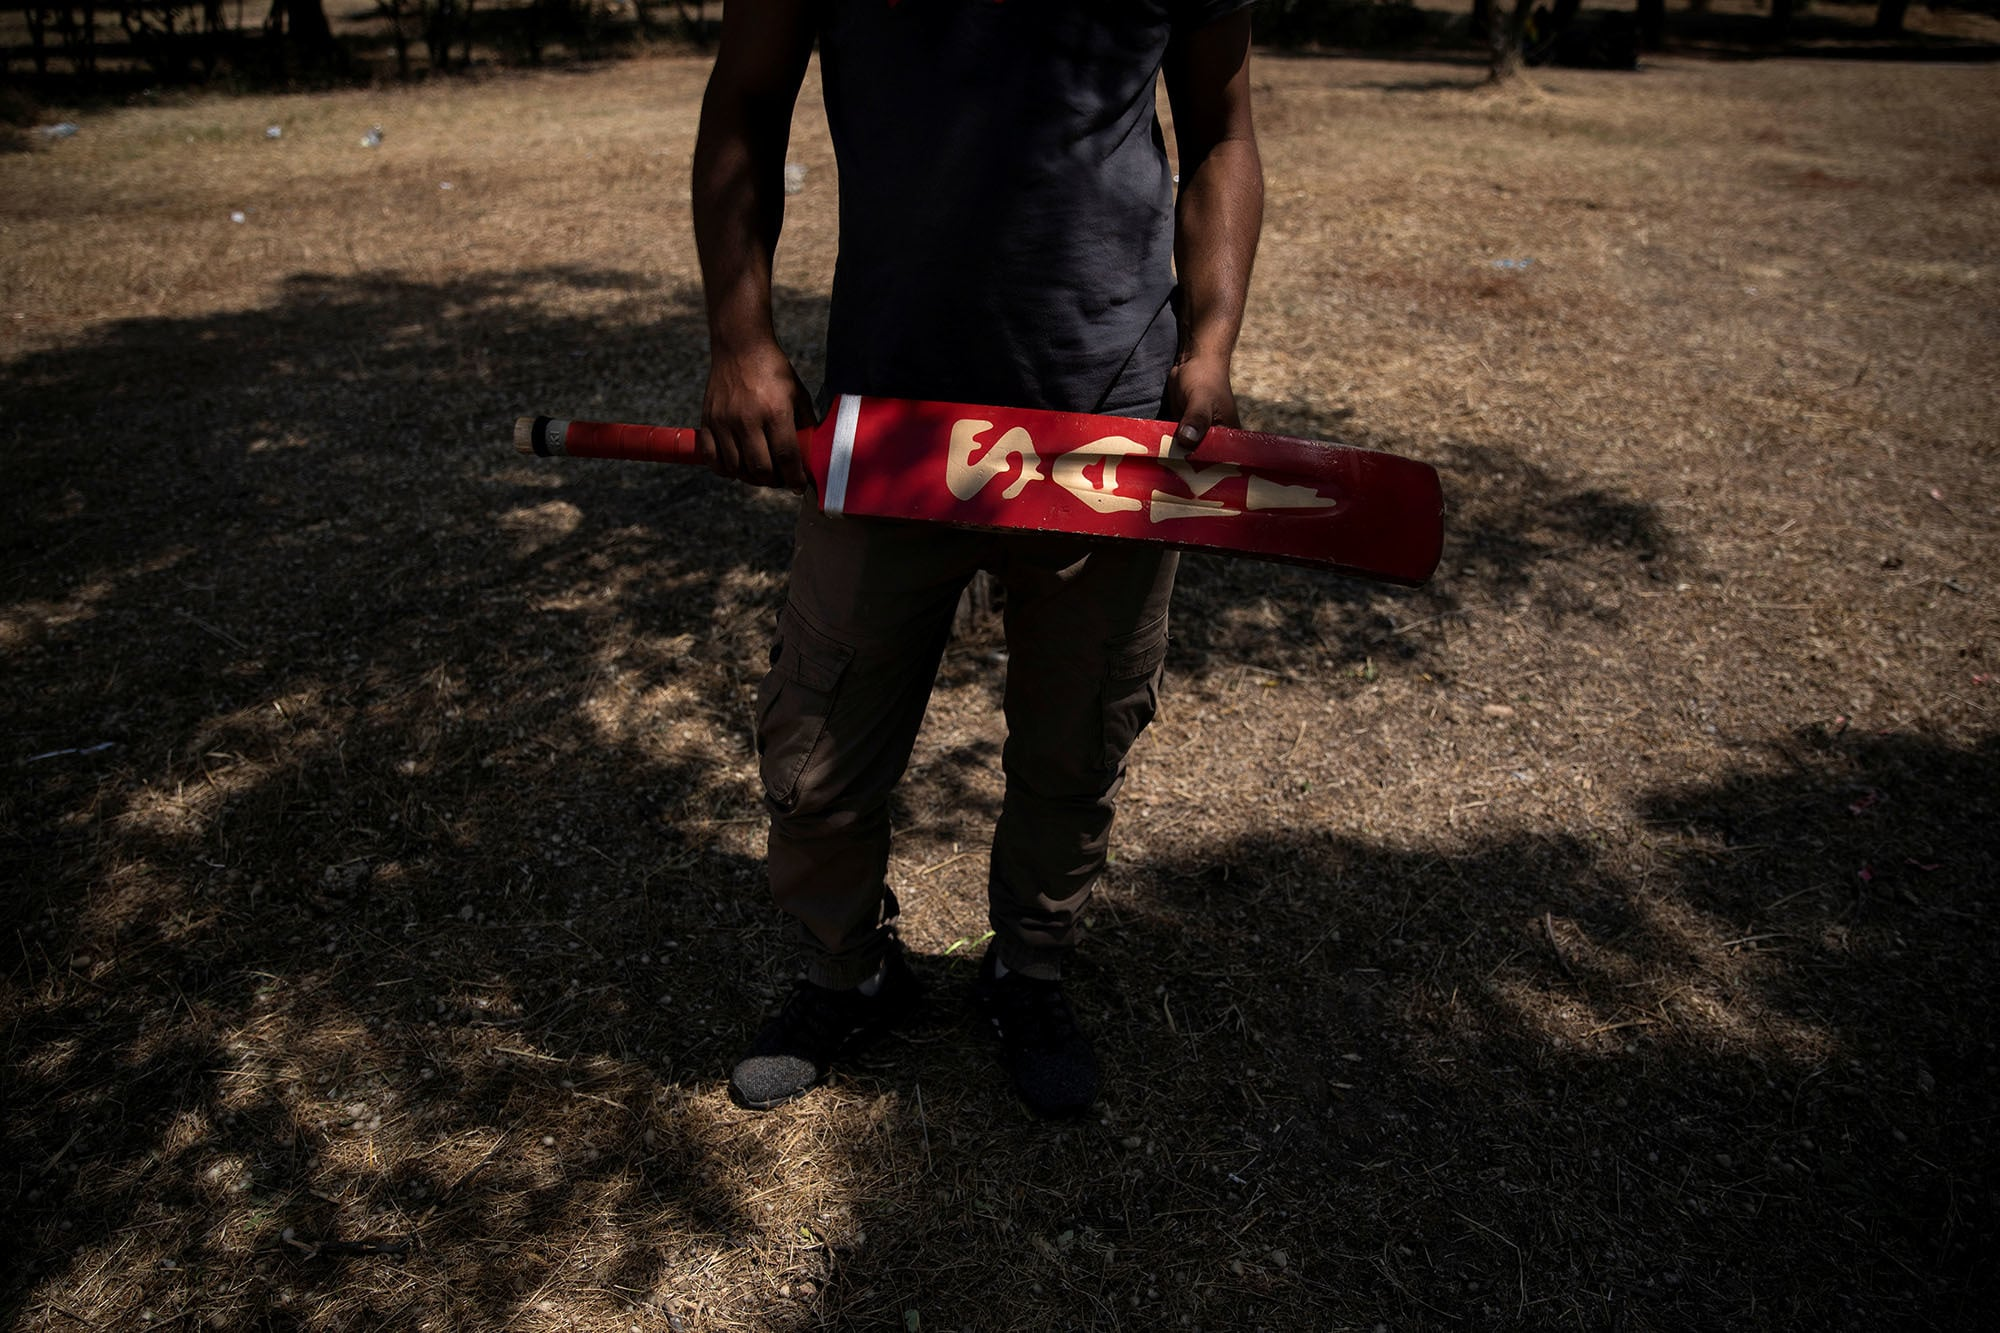 A Pakistani man living in Greece holds a bat before a tape-ball cricket game in a park in the Agioi Anargyroi suburb in Athens, Greece on June 23. — Reuters